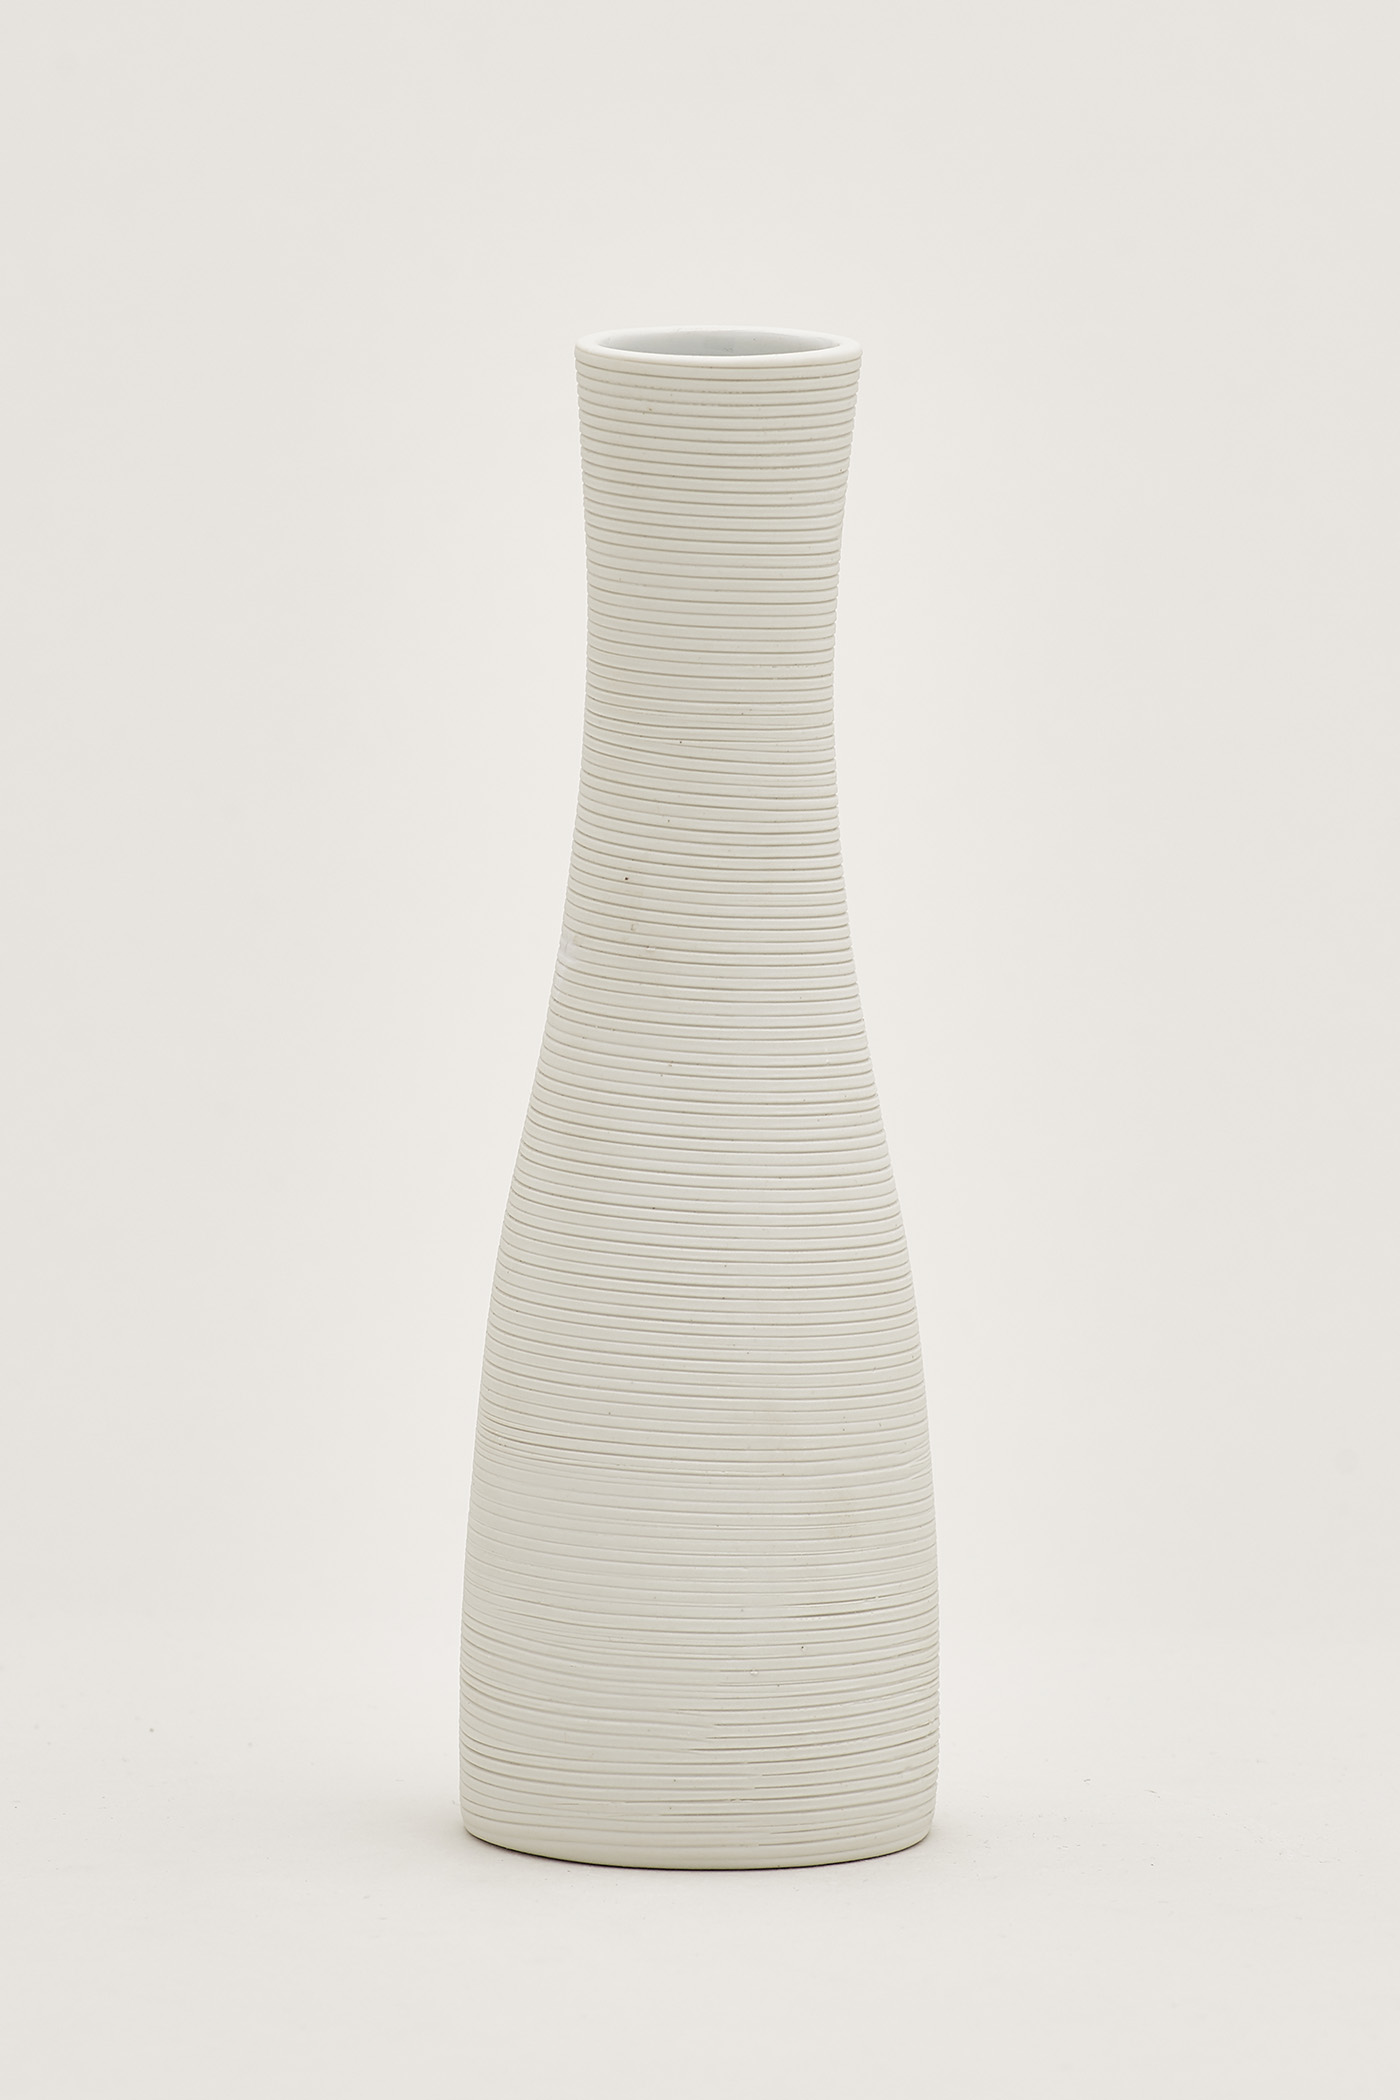 Hiro Slim Drop Vase